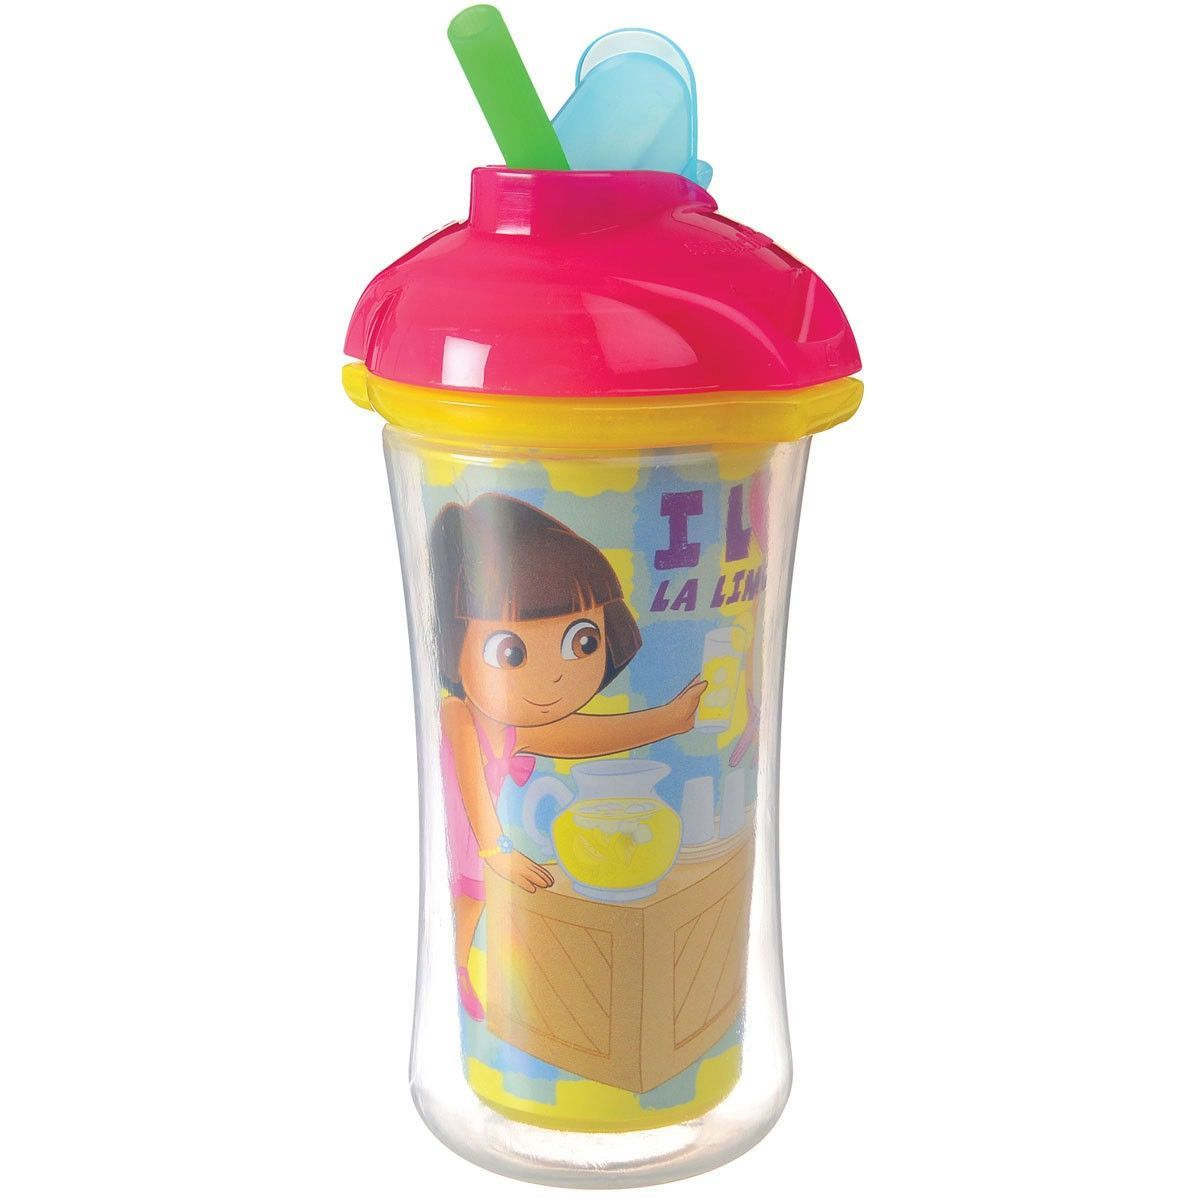 Munchkin Dora The Explorer Click Lock Insulated Straw Cup 9 Ounce In Hot Pink Cap Insulated Straw Cup Cup With Straw Cup